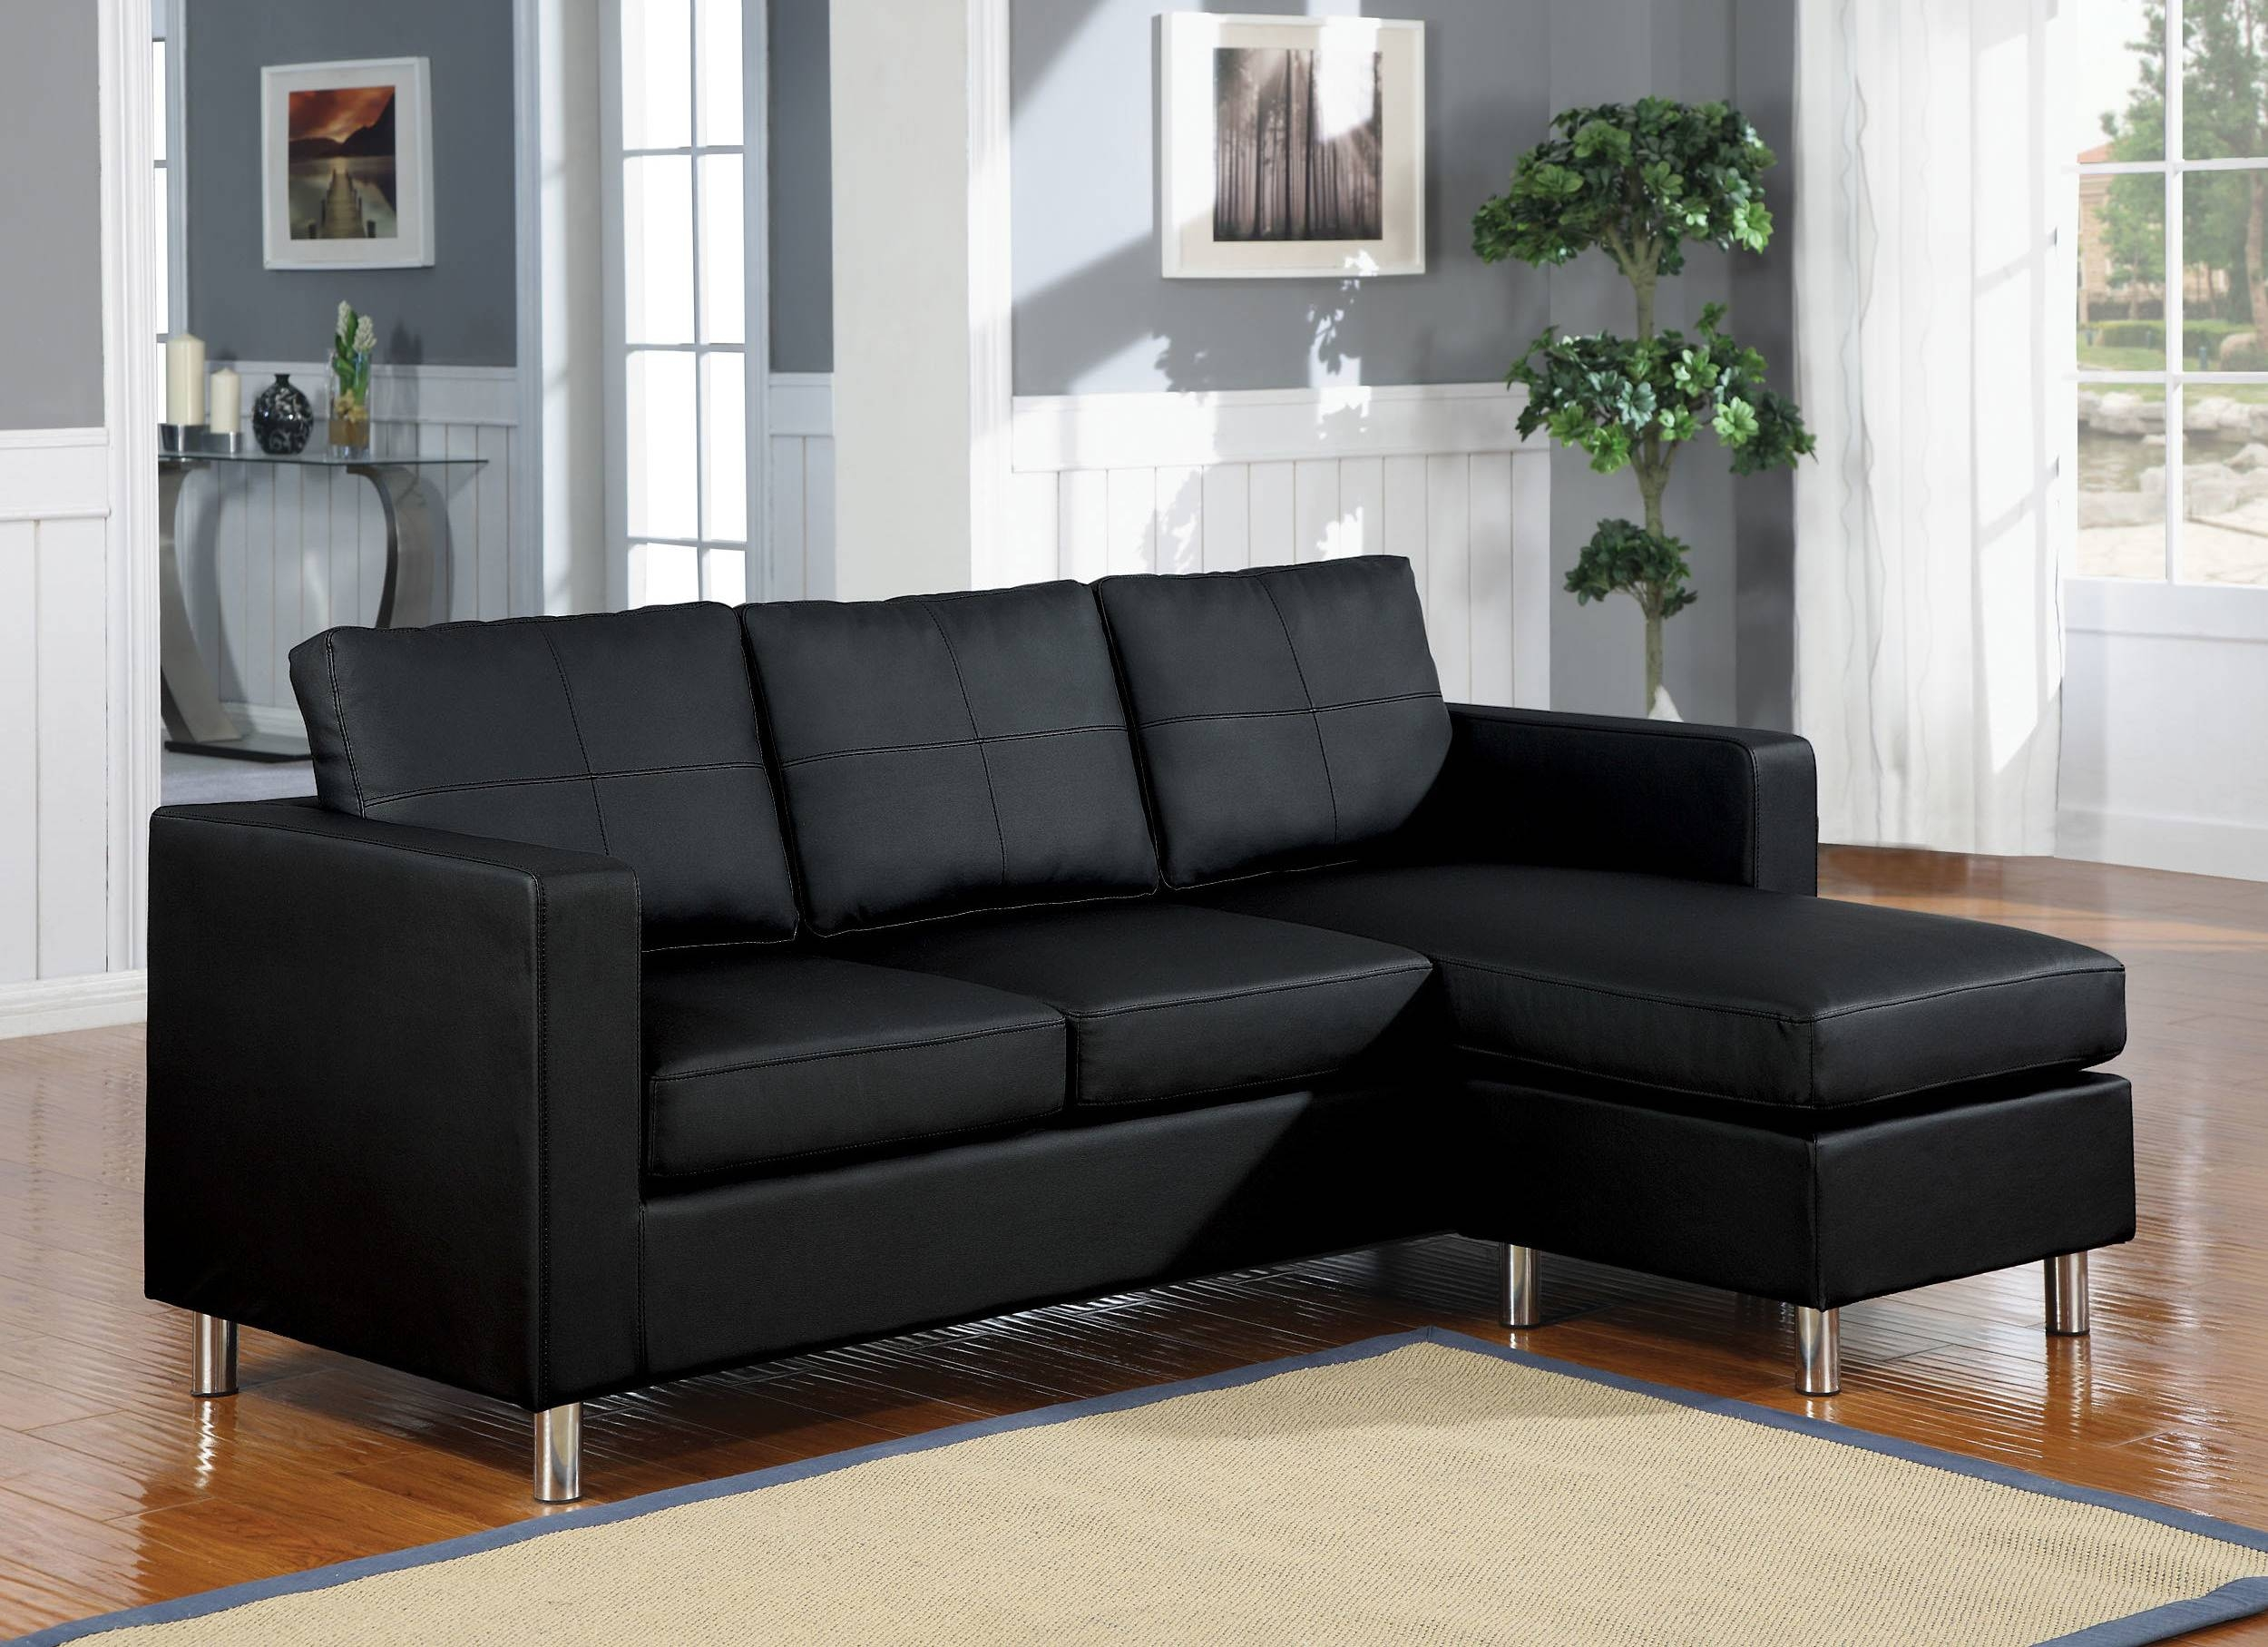 Furniture & Sofa: Perfect Small Spaces Configurable Sectional Sofa Inside Small Spaces Configurable Sectional Sofas (View 7 of 15)